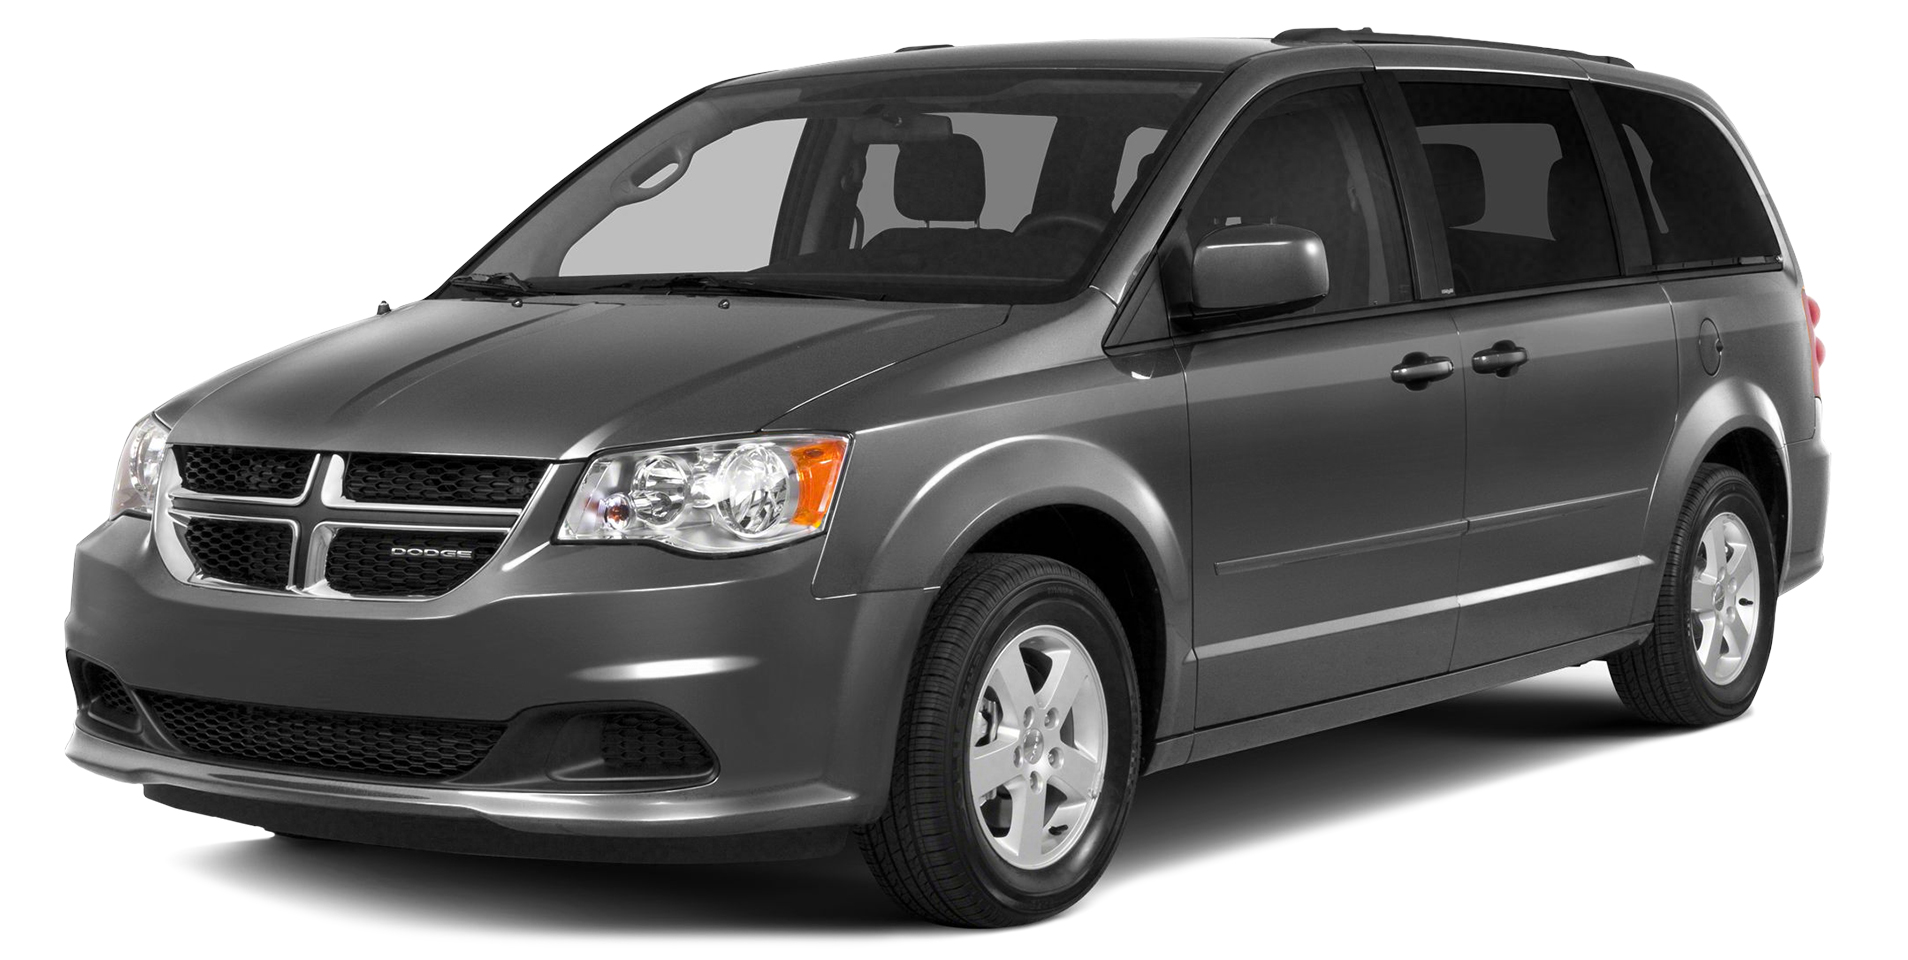 TIPMs and Repairs for 2012 Dodge Grand Caravan Minivans